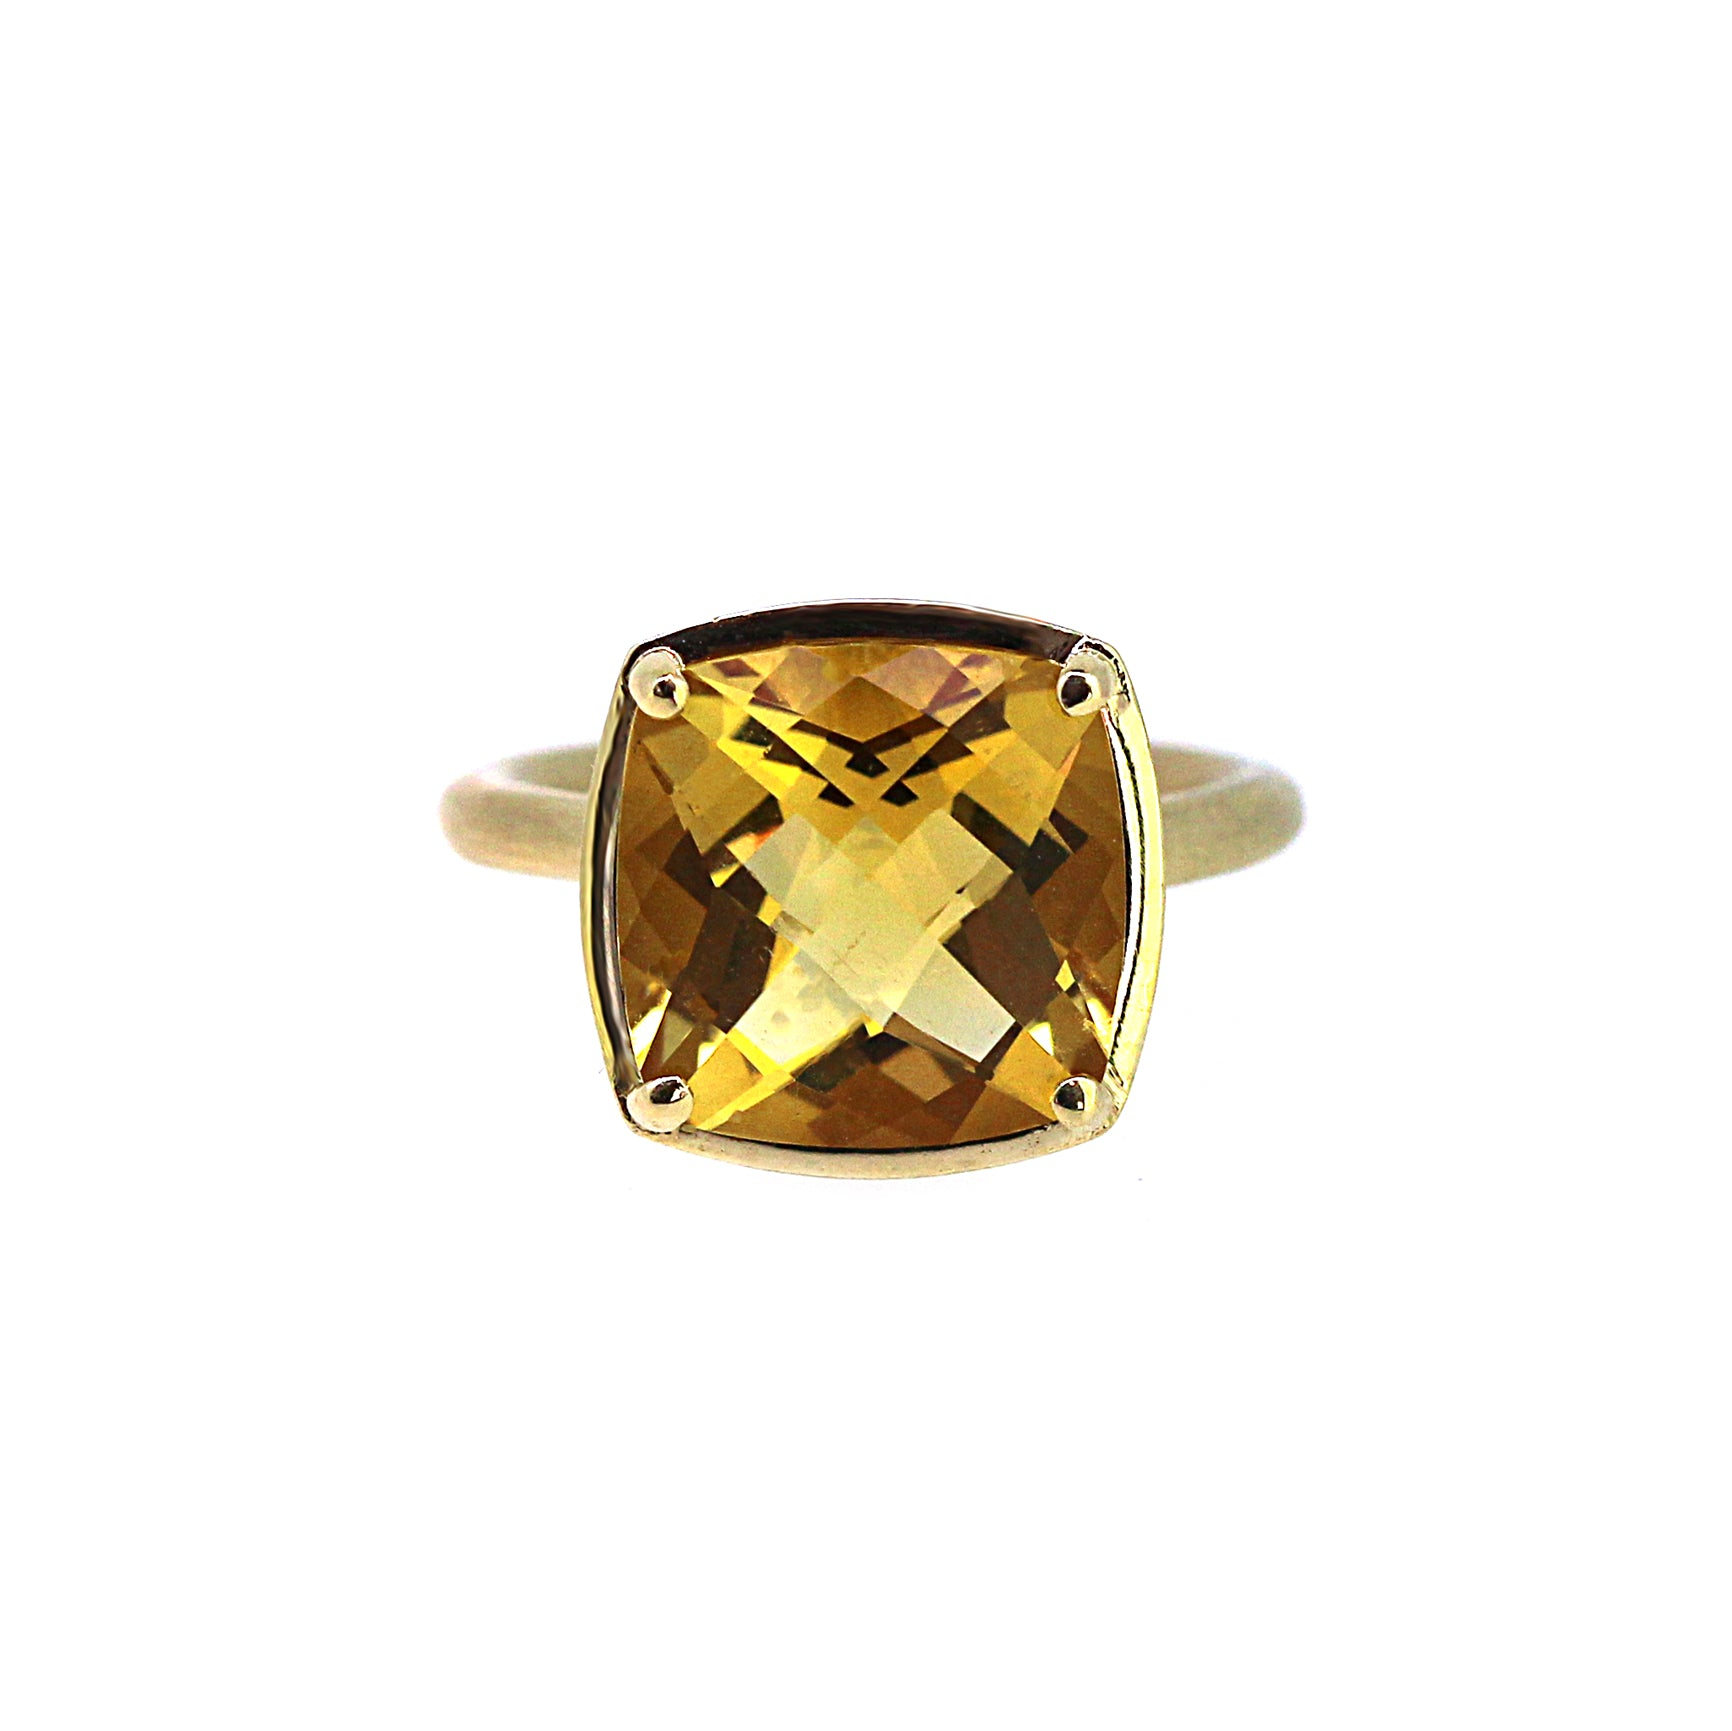 yellow ripple citrine jewellery rings gold amber ring product mcdonough sloane kiki engagement